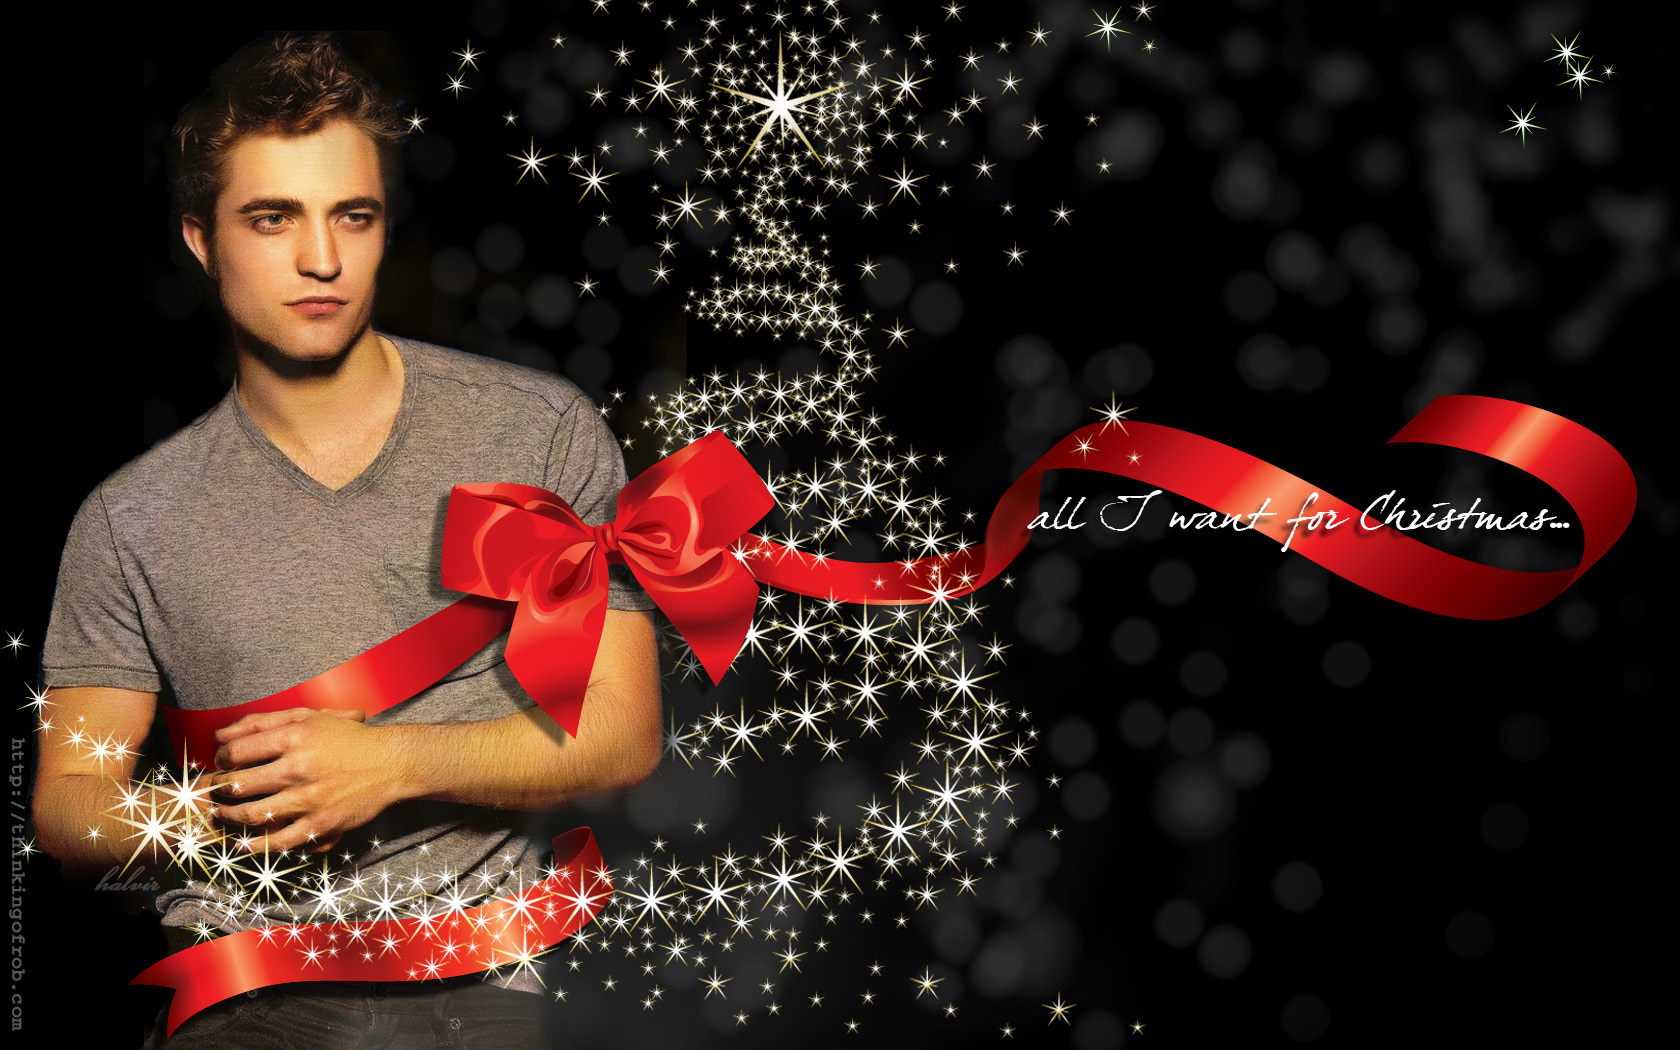 http://images2.fanpop.com/image/photos/9300000/Robert-Pattinson-Wallpaper-twilight-series-9333929-1680-1050.jpg